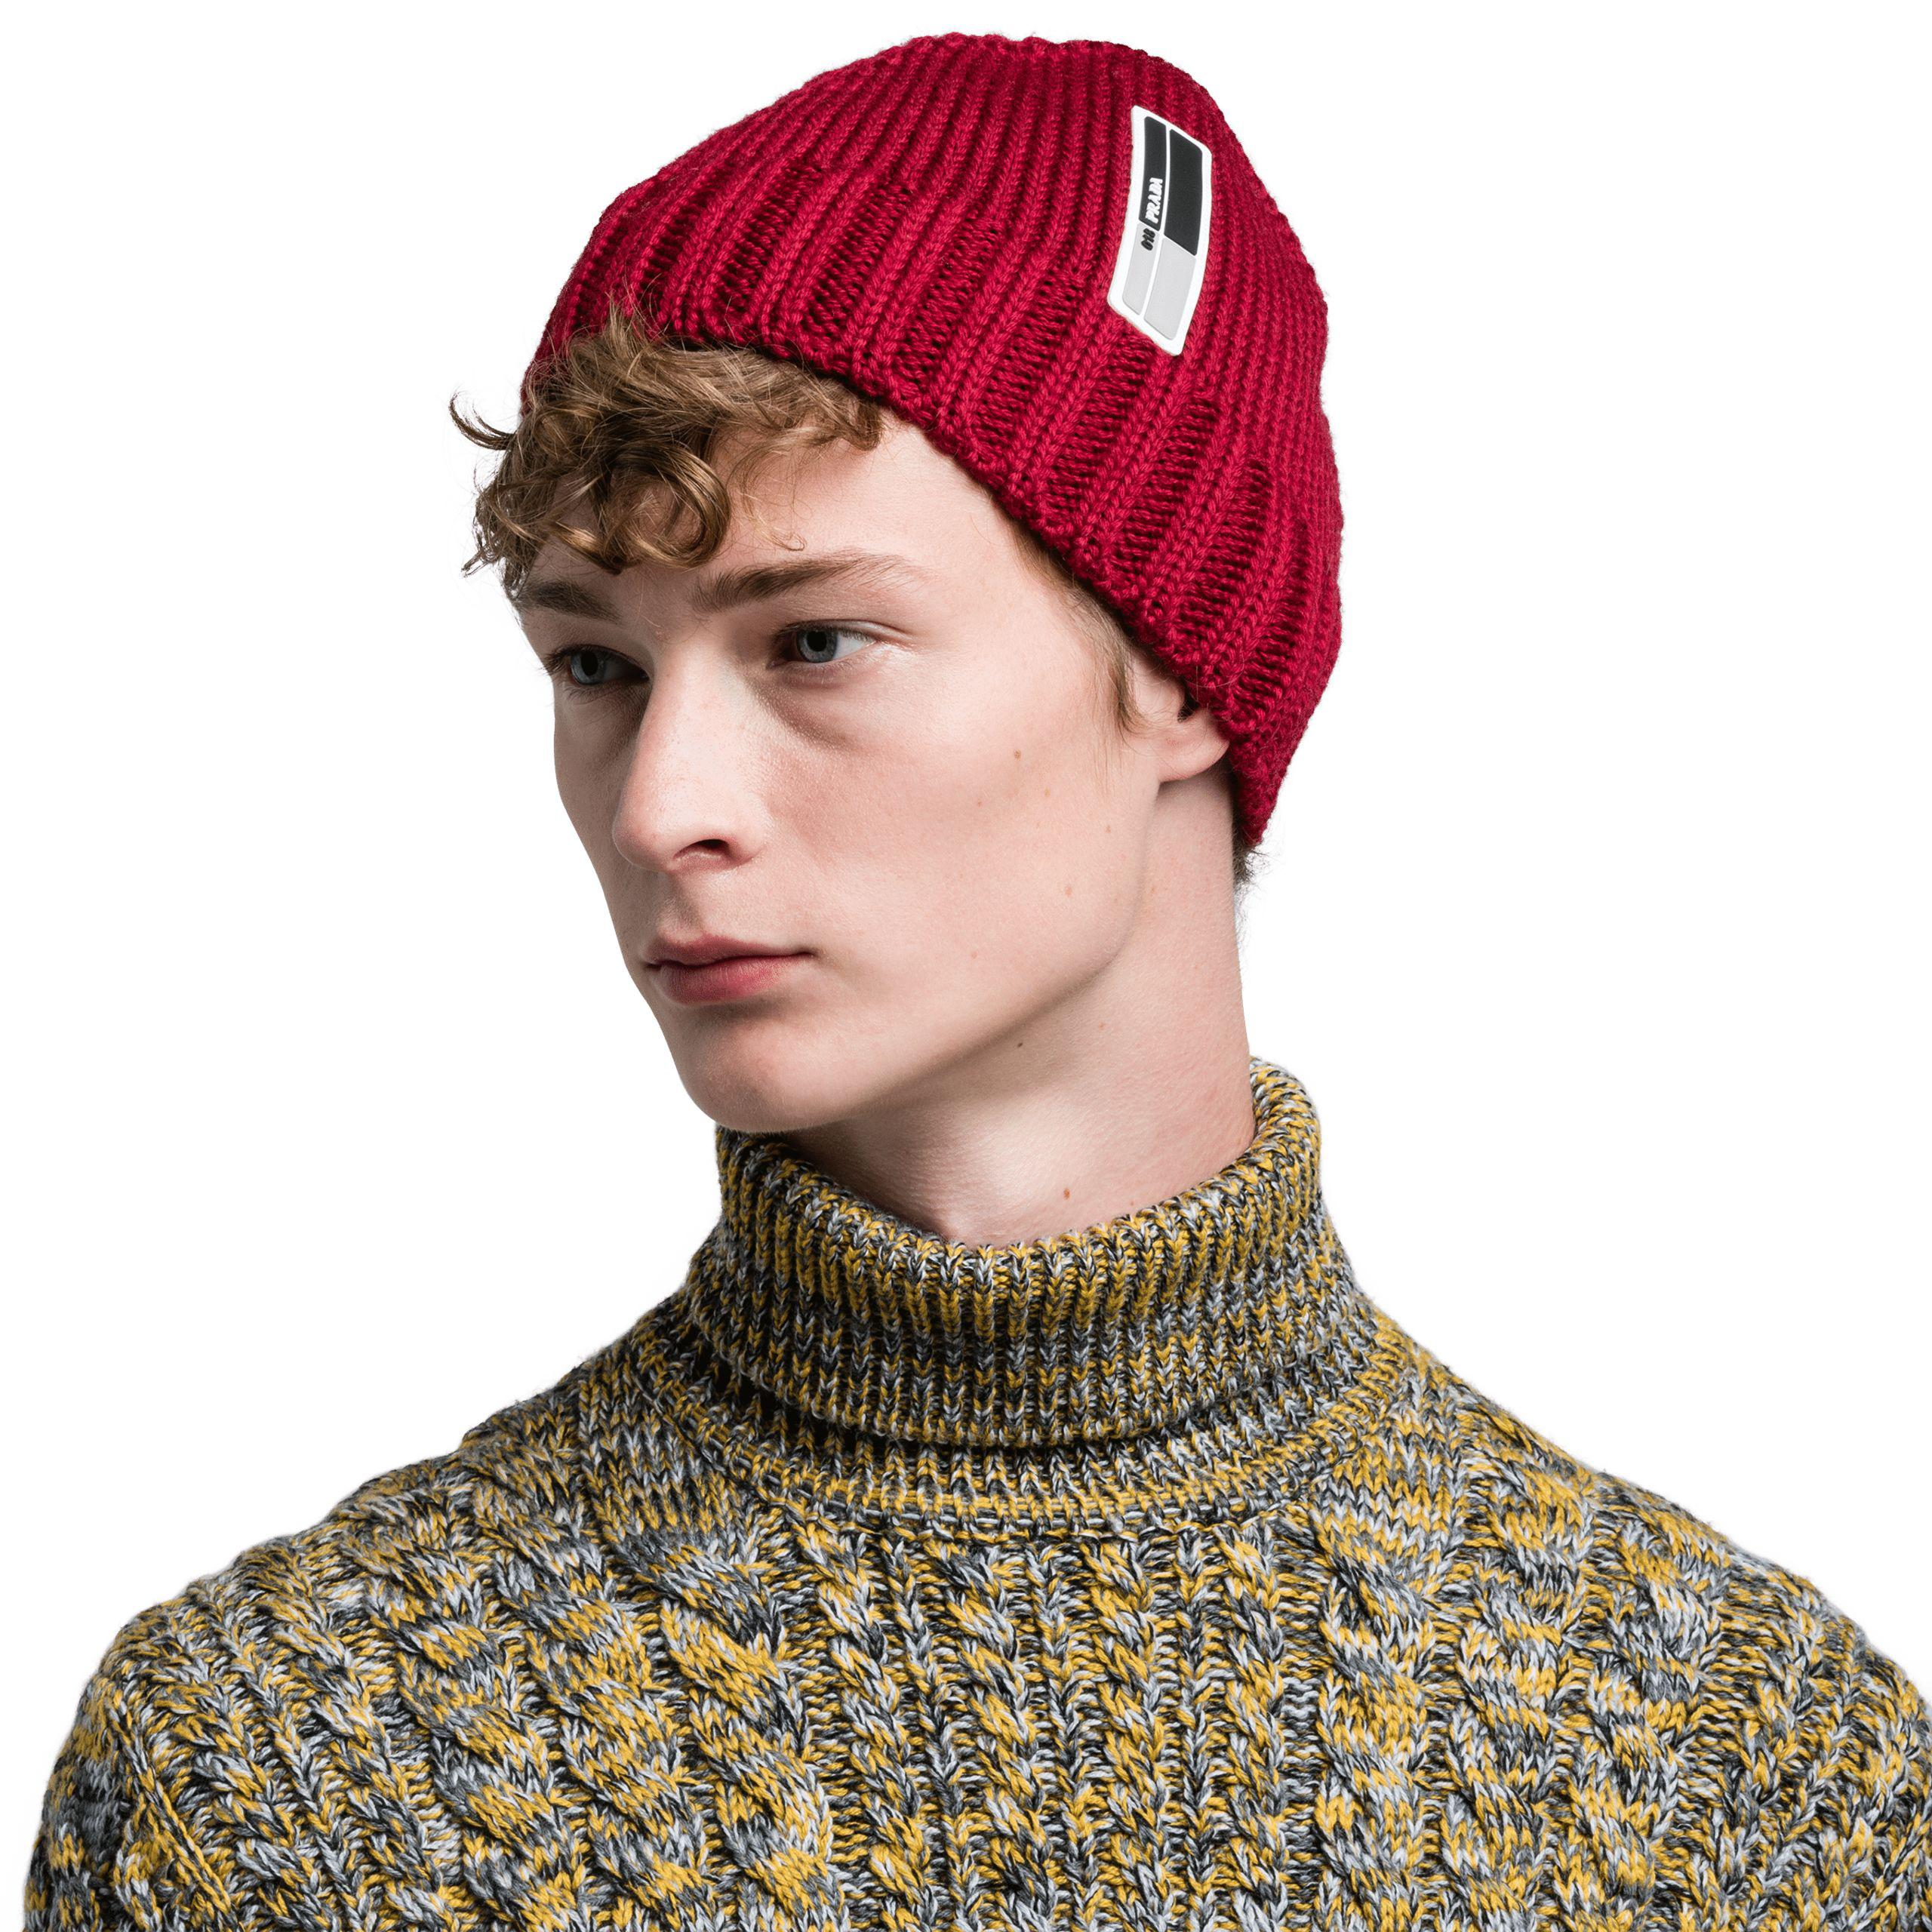 a7667c2352b Lyst - Prada Cablé Wool Hat in Green for Men